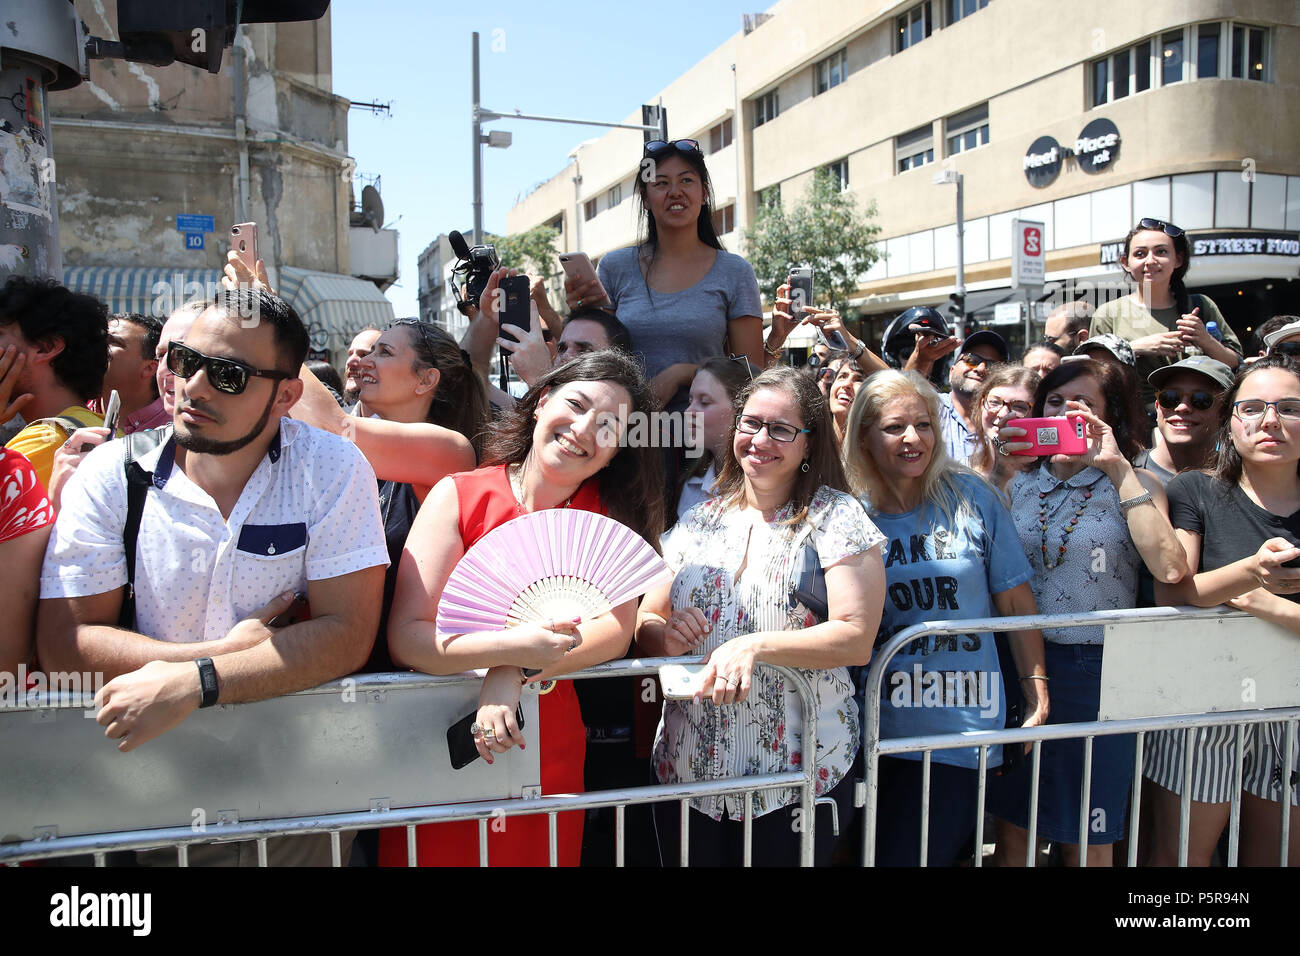 Onlookers await the arrival of the Duke of Cambridge as he meets singer Netta Barzilai, who won the 2018 Eurovision Song Contest, at the Espresso Bar Kiosk at Rothschild Boulevard in Tel Aviv, Israel, during his official tour of the Middle East. (Photo by Chris Jackson/Getty Images). Stock Photo